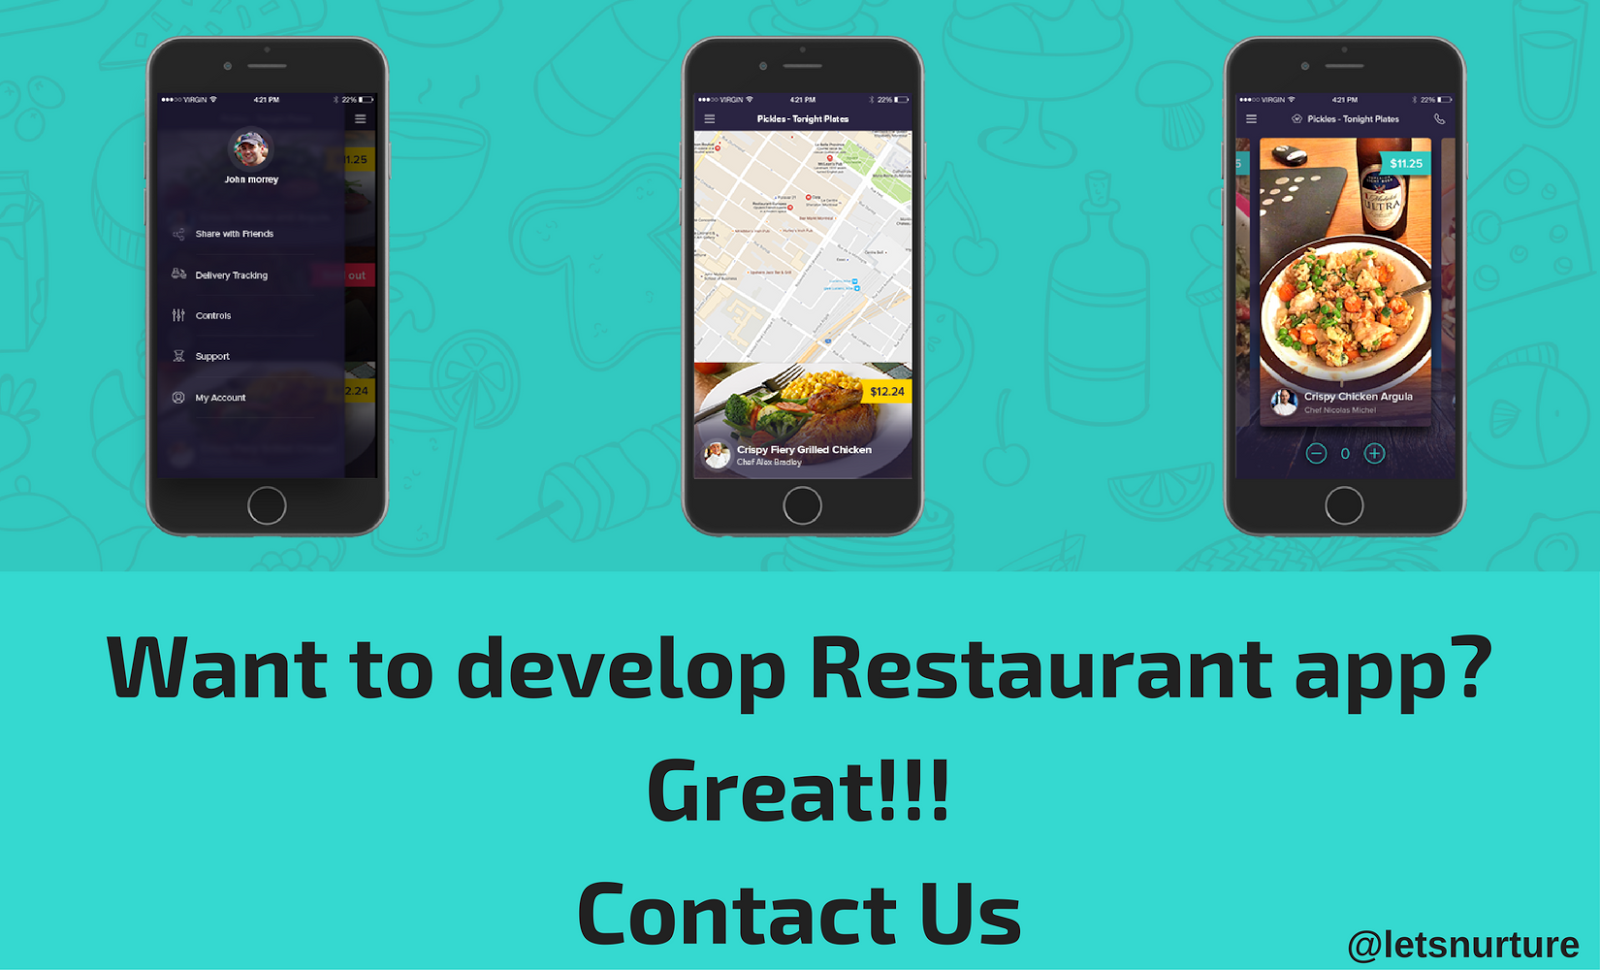 Contact LetsNurture for Custom Restaurant Mobile app development